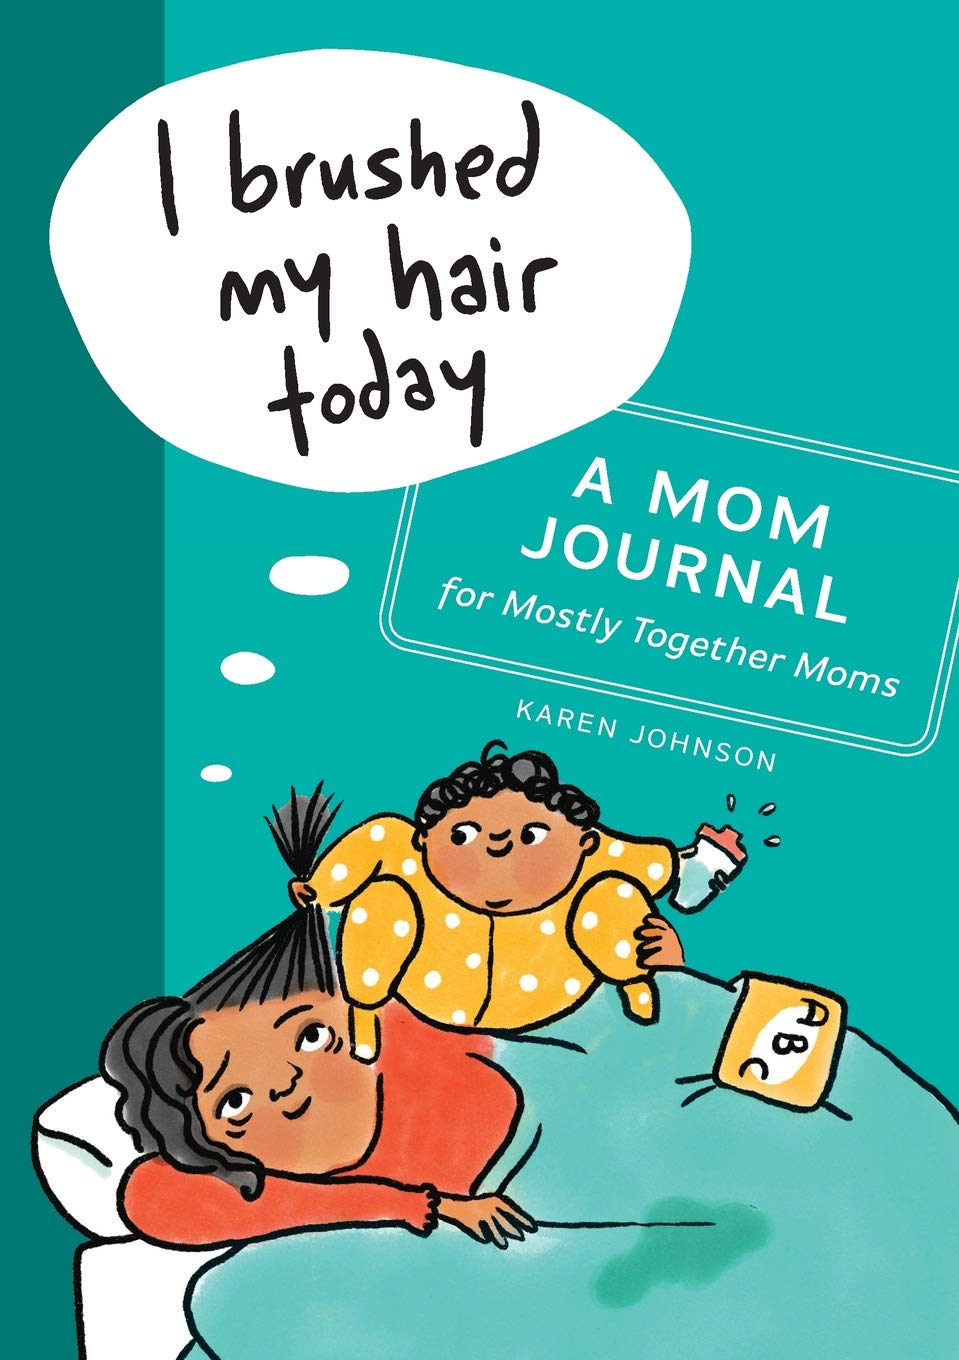 I Brushed My Hair Today: A Mom Journal for Mostly Together Moms by Karen Johnson